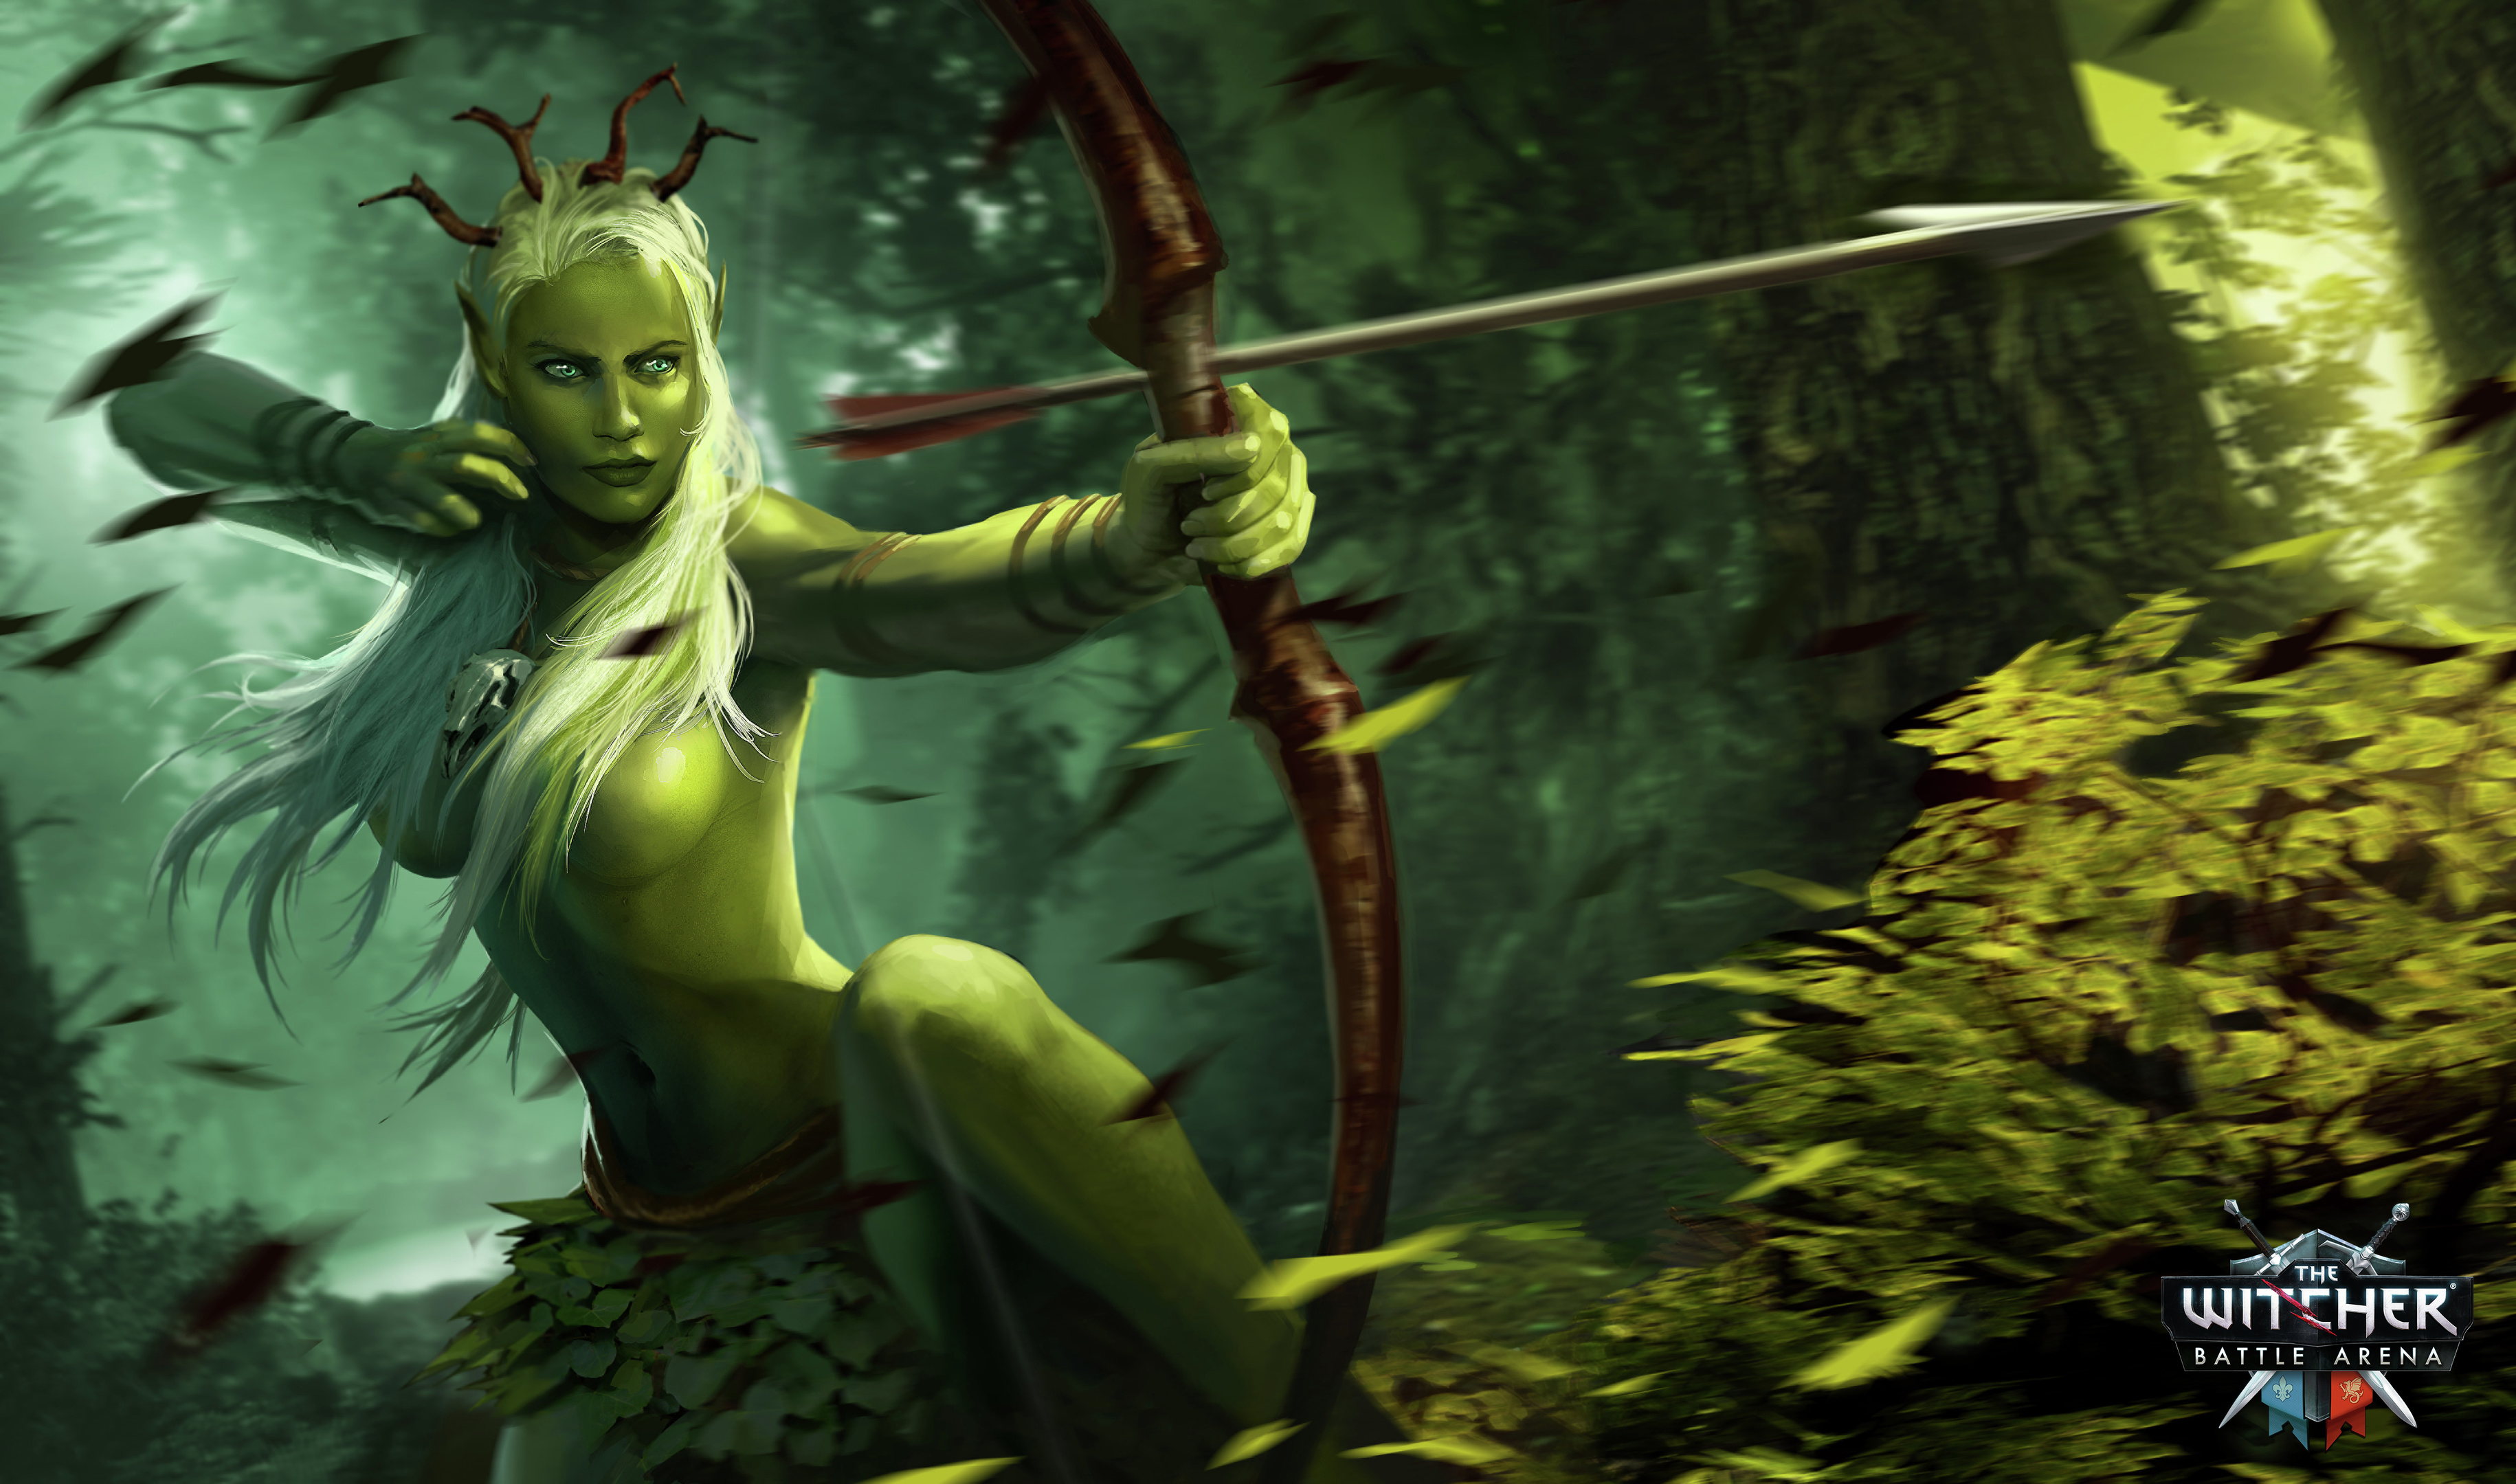 The witcher dryad nude photo